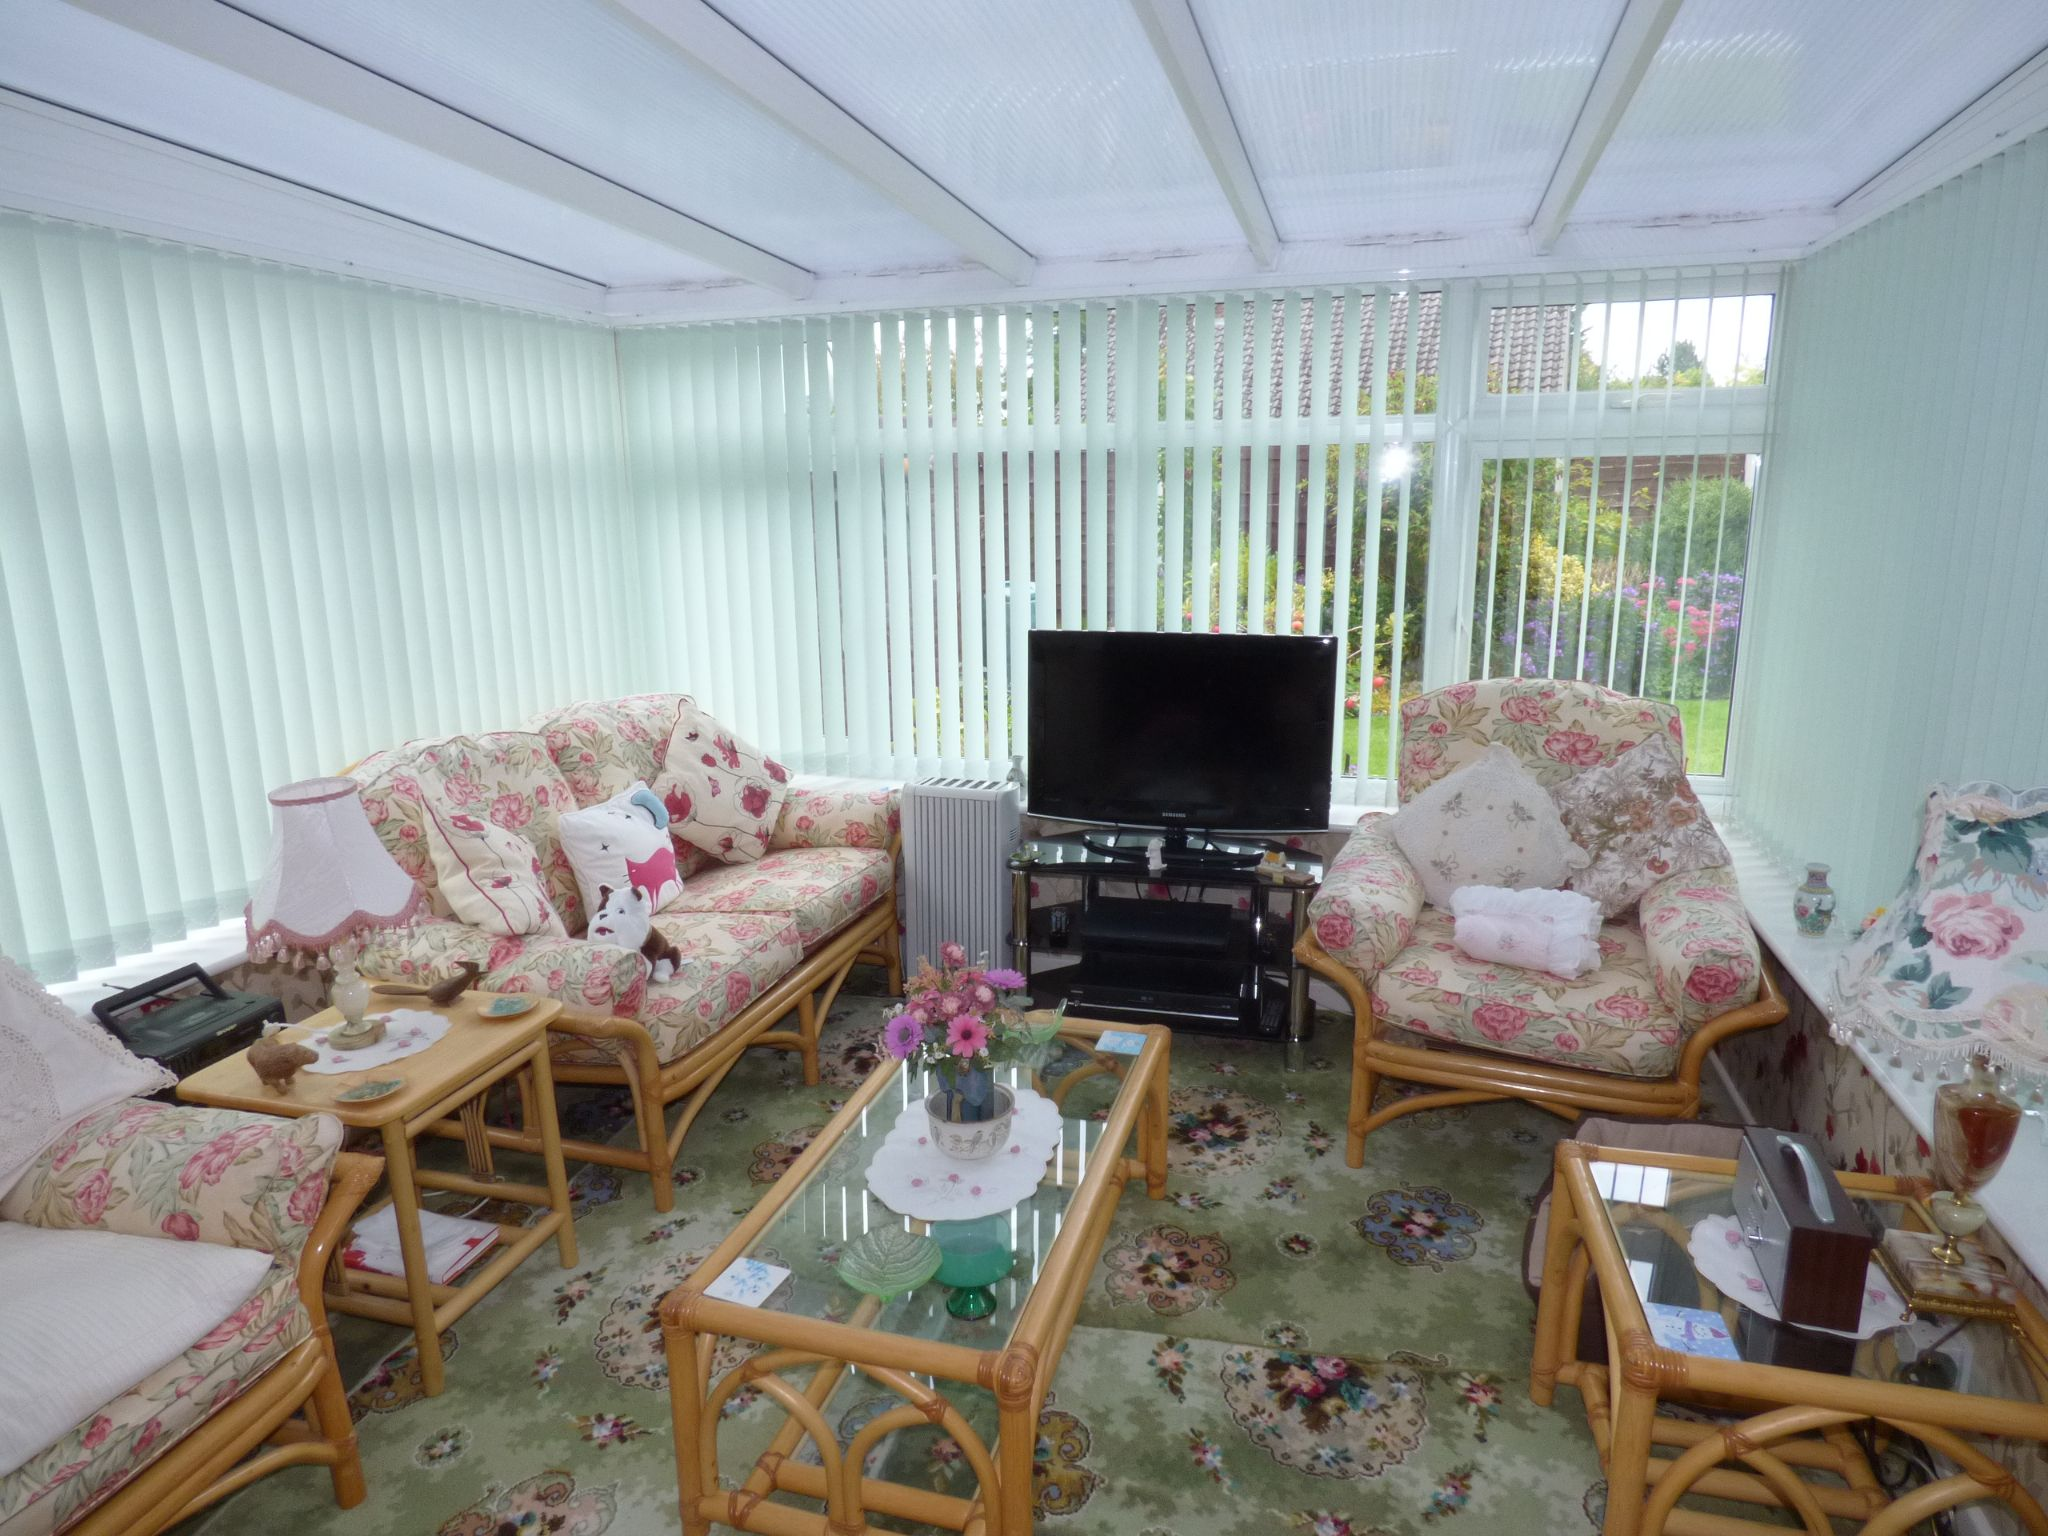 4 Bedroom Detached Bungalow For Sale - Photograph 8